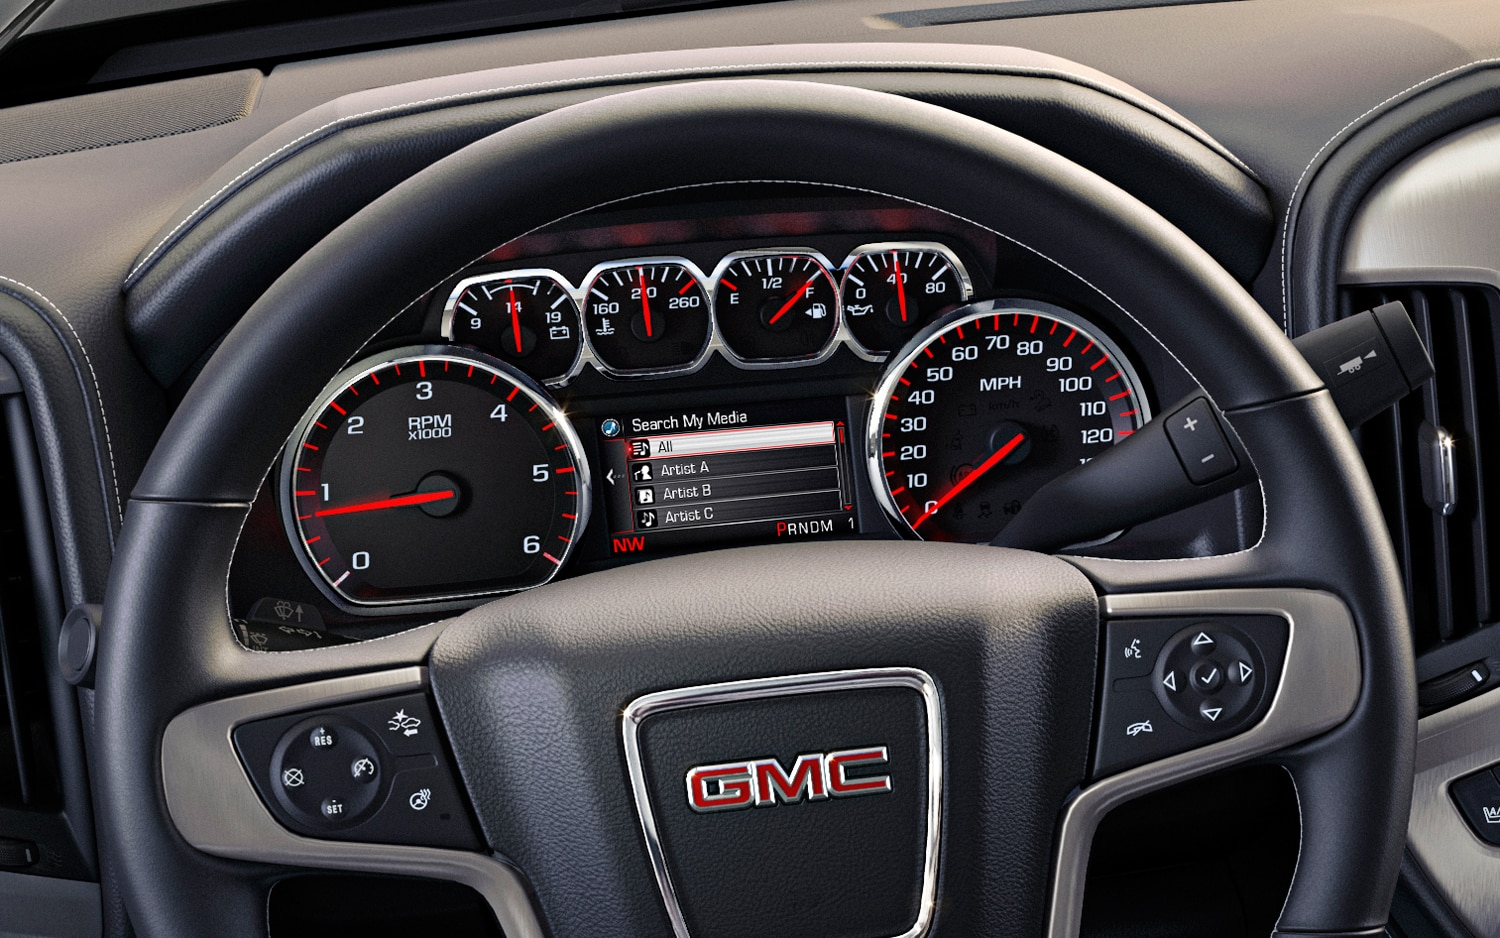 2014 GMC Sierra SLT Interior Steering Wheel IP Detail